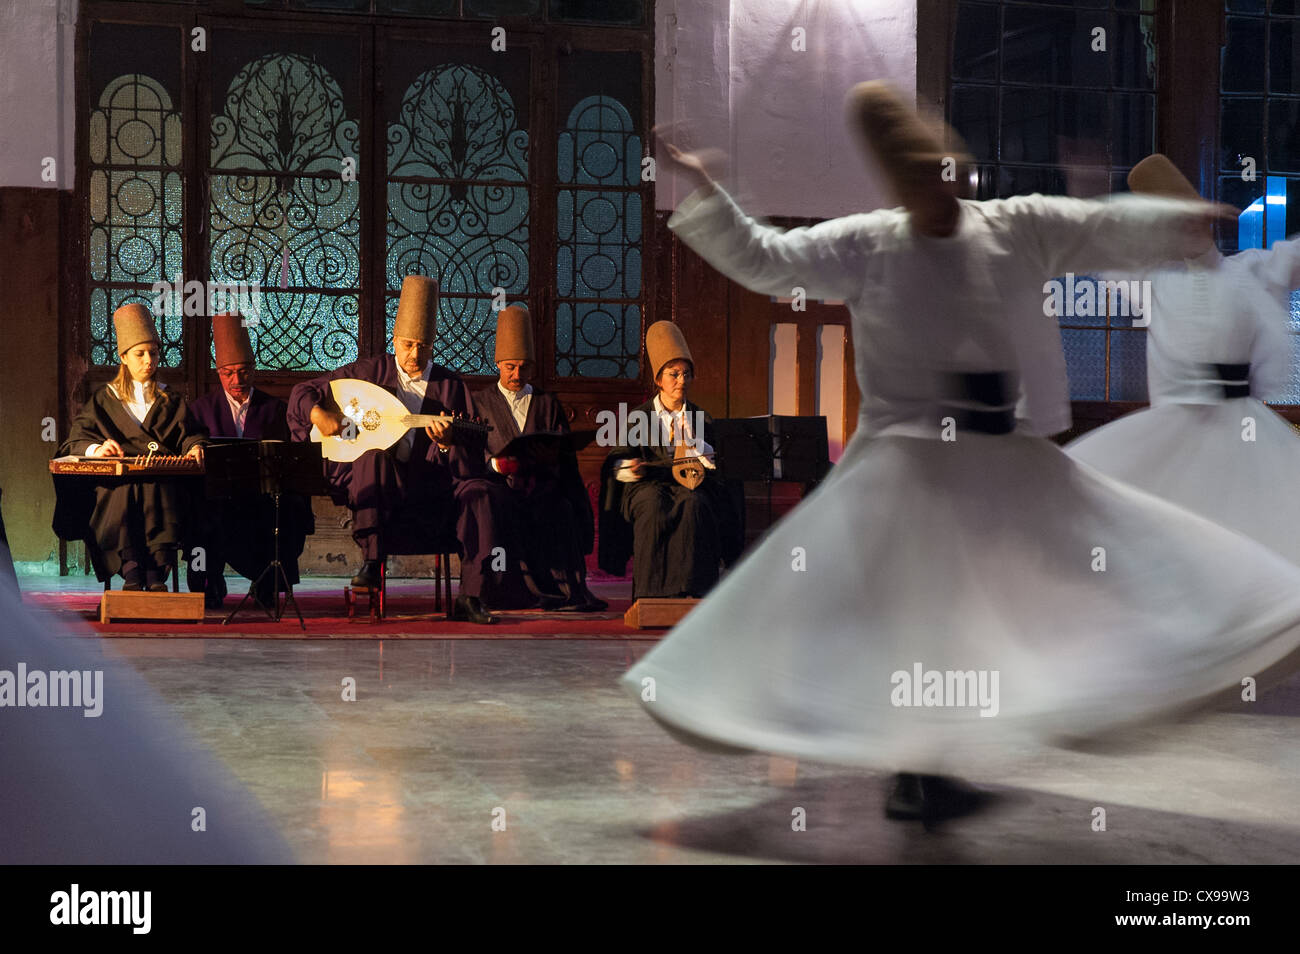 Whirling dervishes and musicians perform tin the event hall of Sirkeci Train Station on October 21, 2005 in Istanbul, - Stock Image